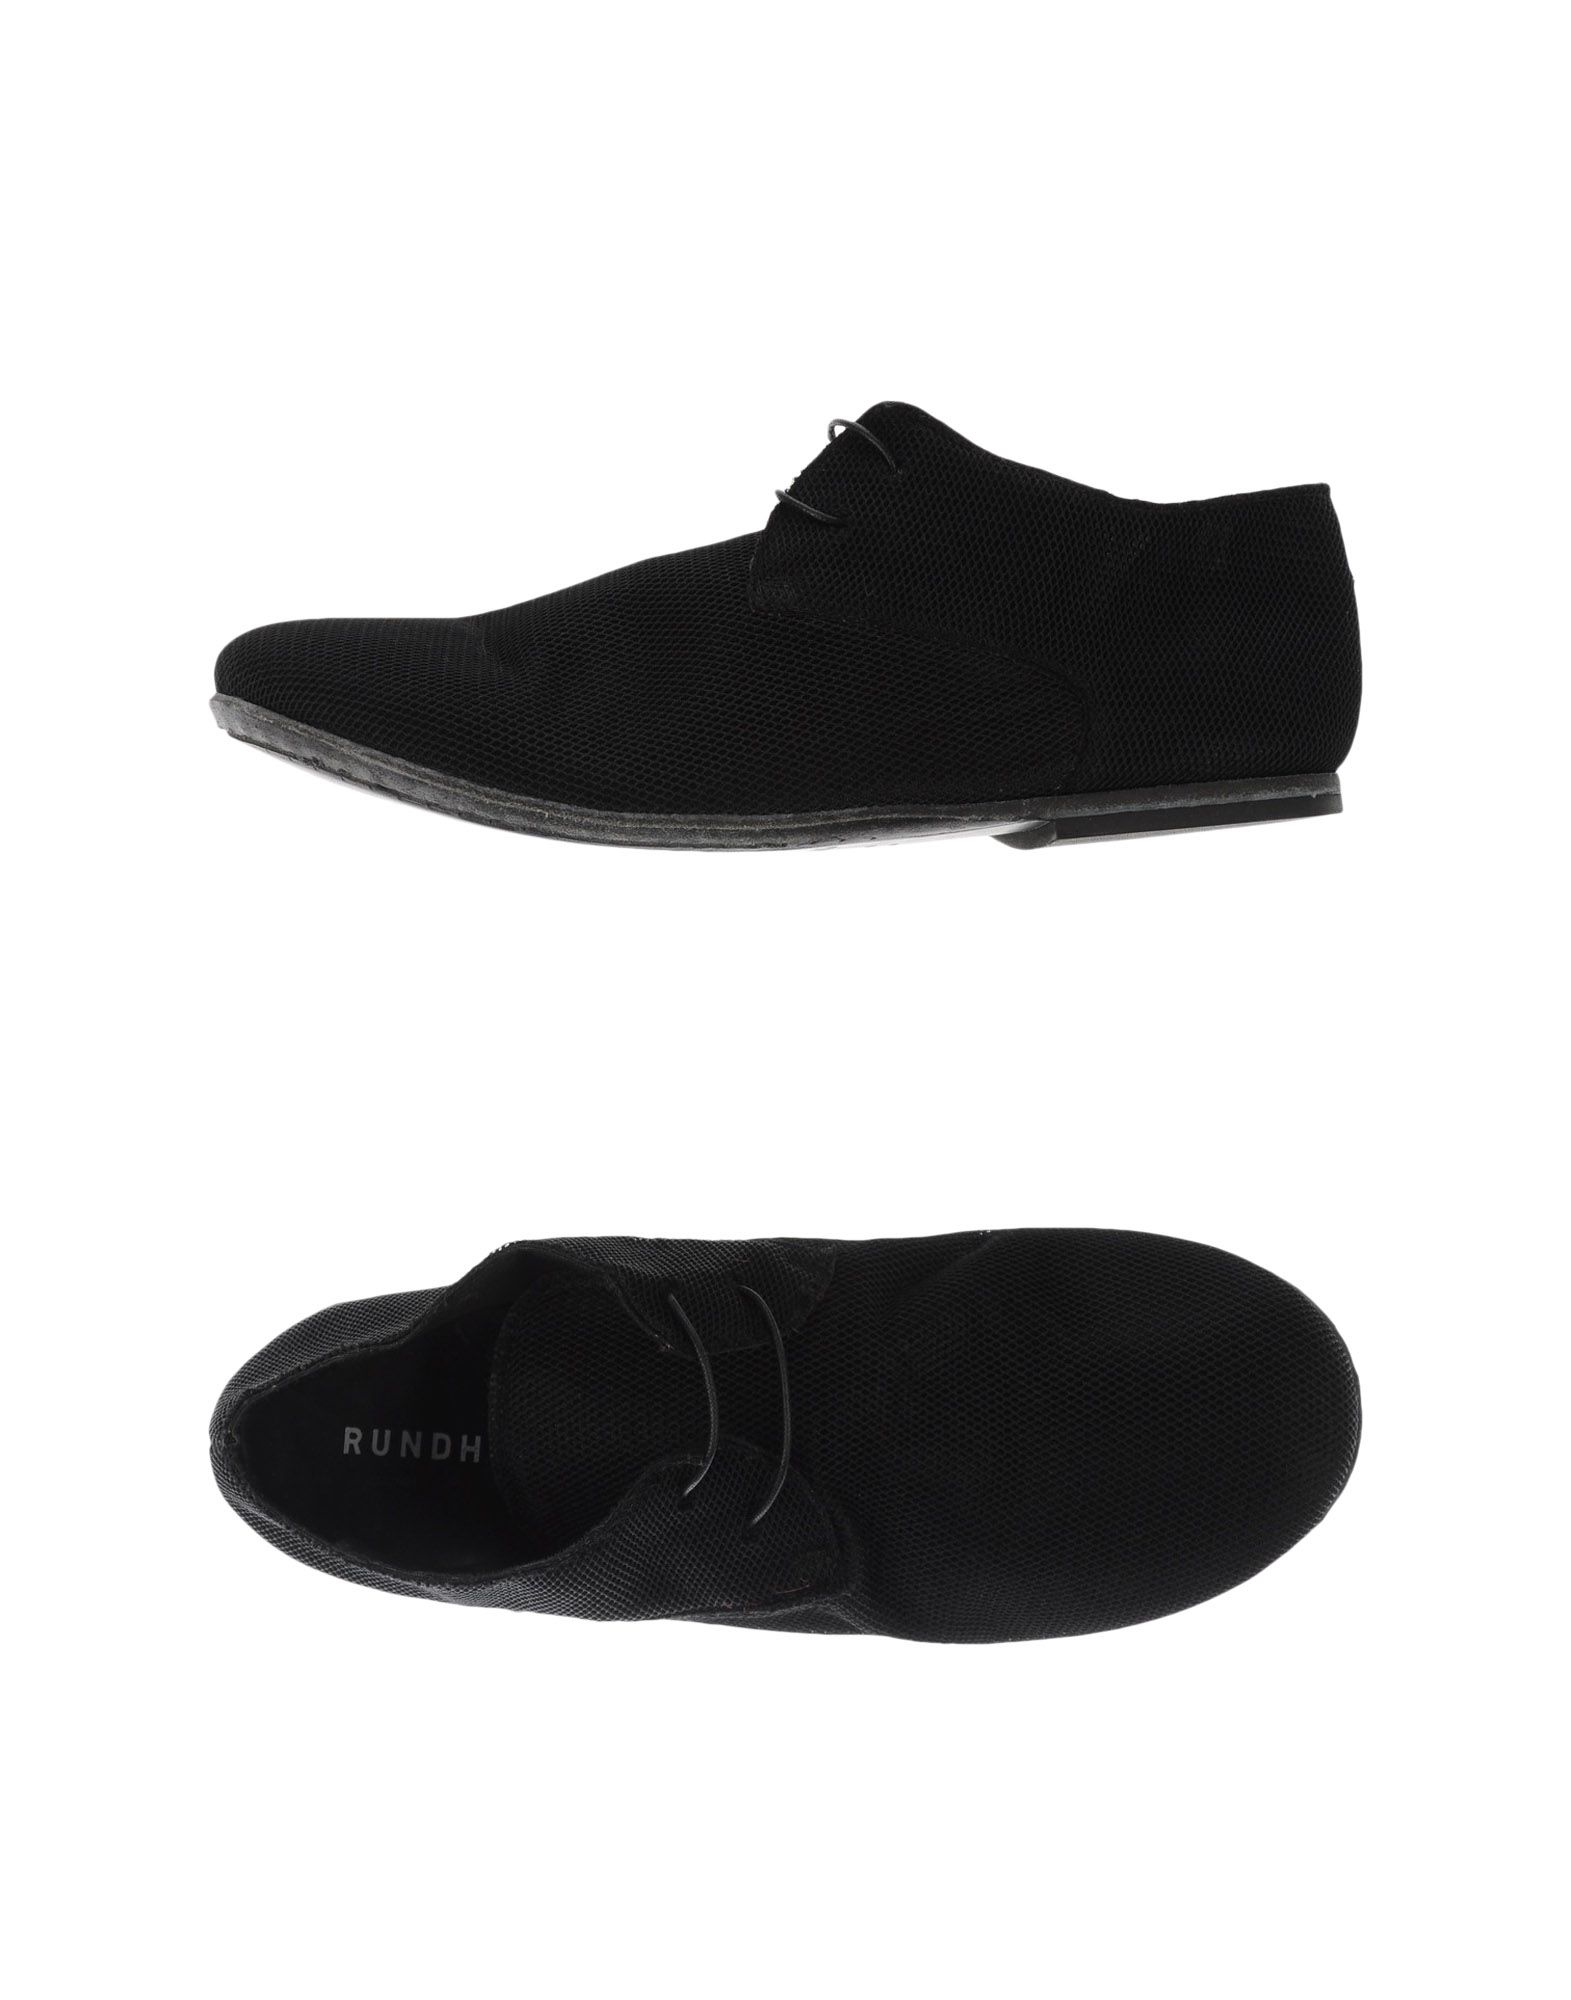 Lyst - Rundholz Lace-up Shoes in Black